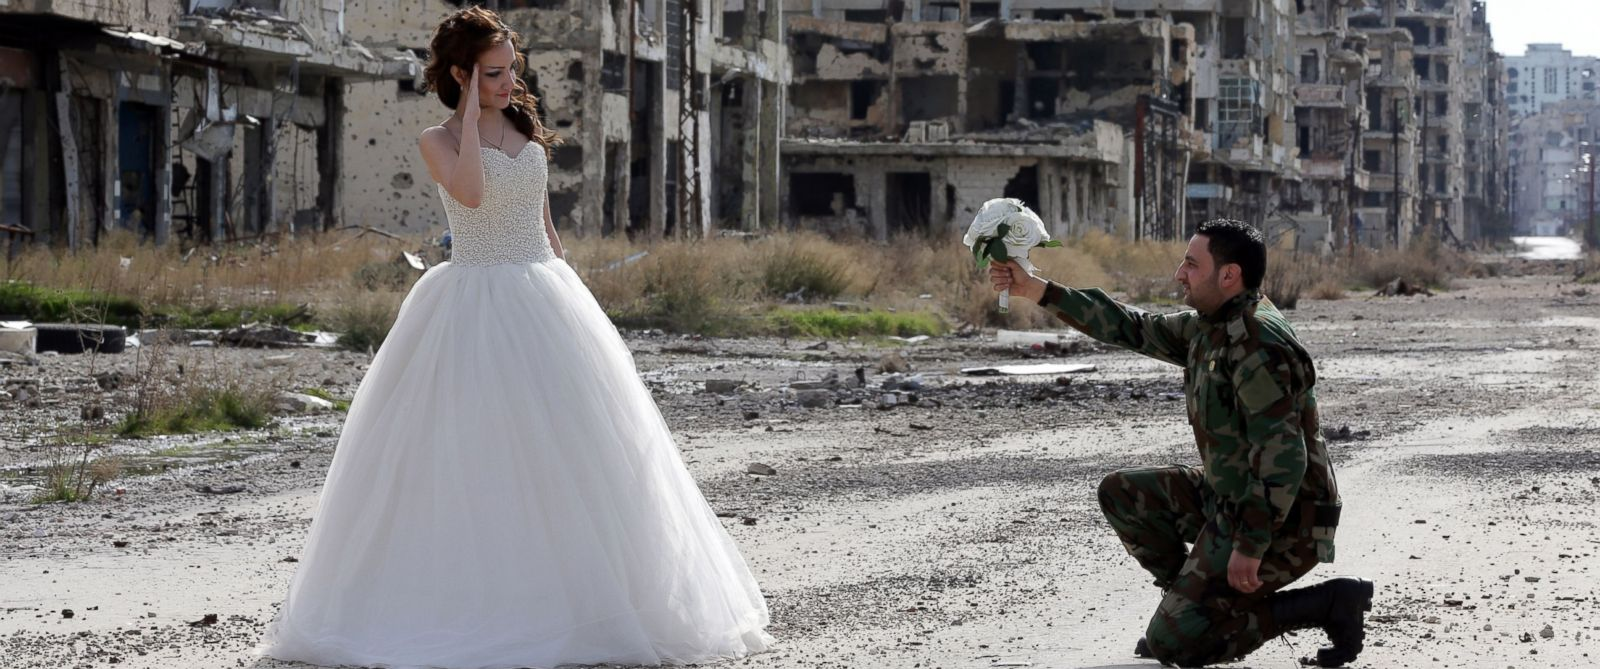 PHOTO: Newly-wed Syrian couple Nada Merhi,and Syrian army soldier Hassan Youssef, pose for a wedding picture amid heavily damaged buildings in the war ravaged city of Homs on Feb. 5, 2016.